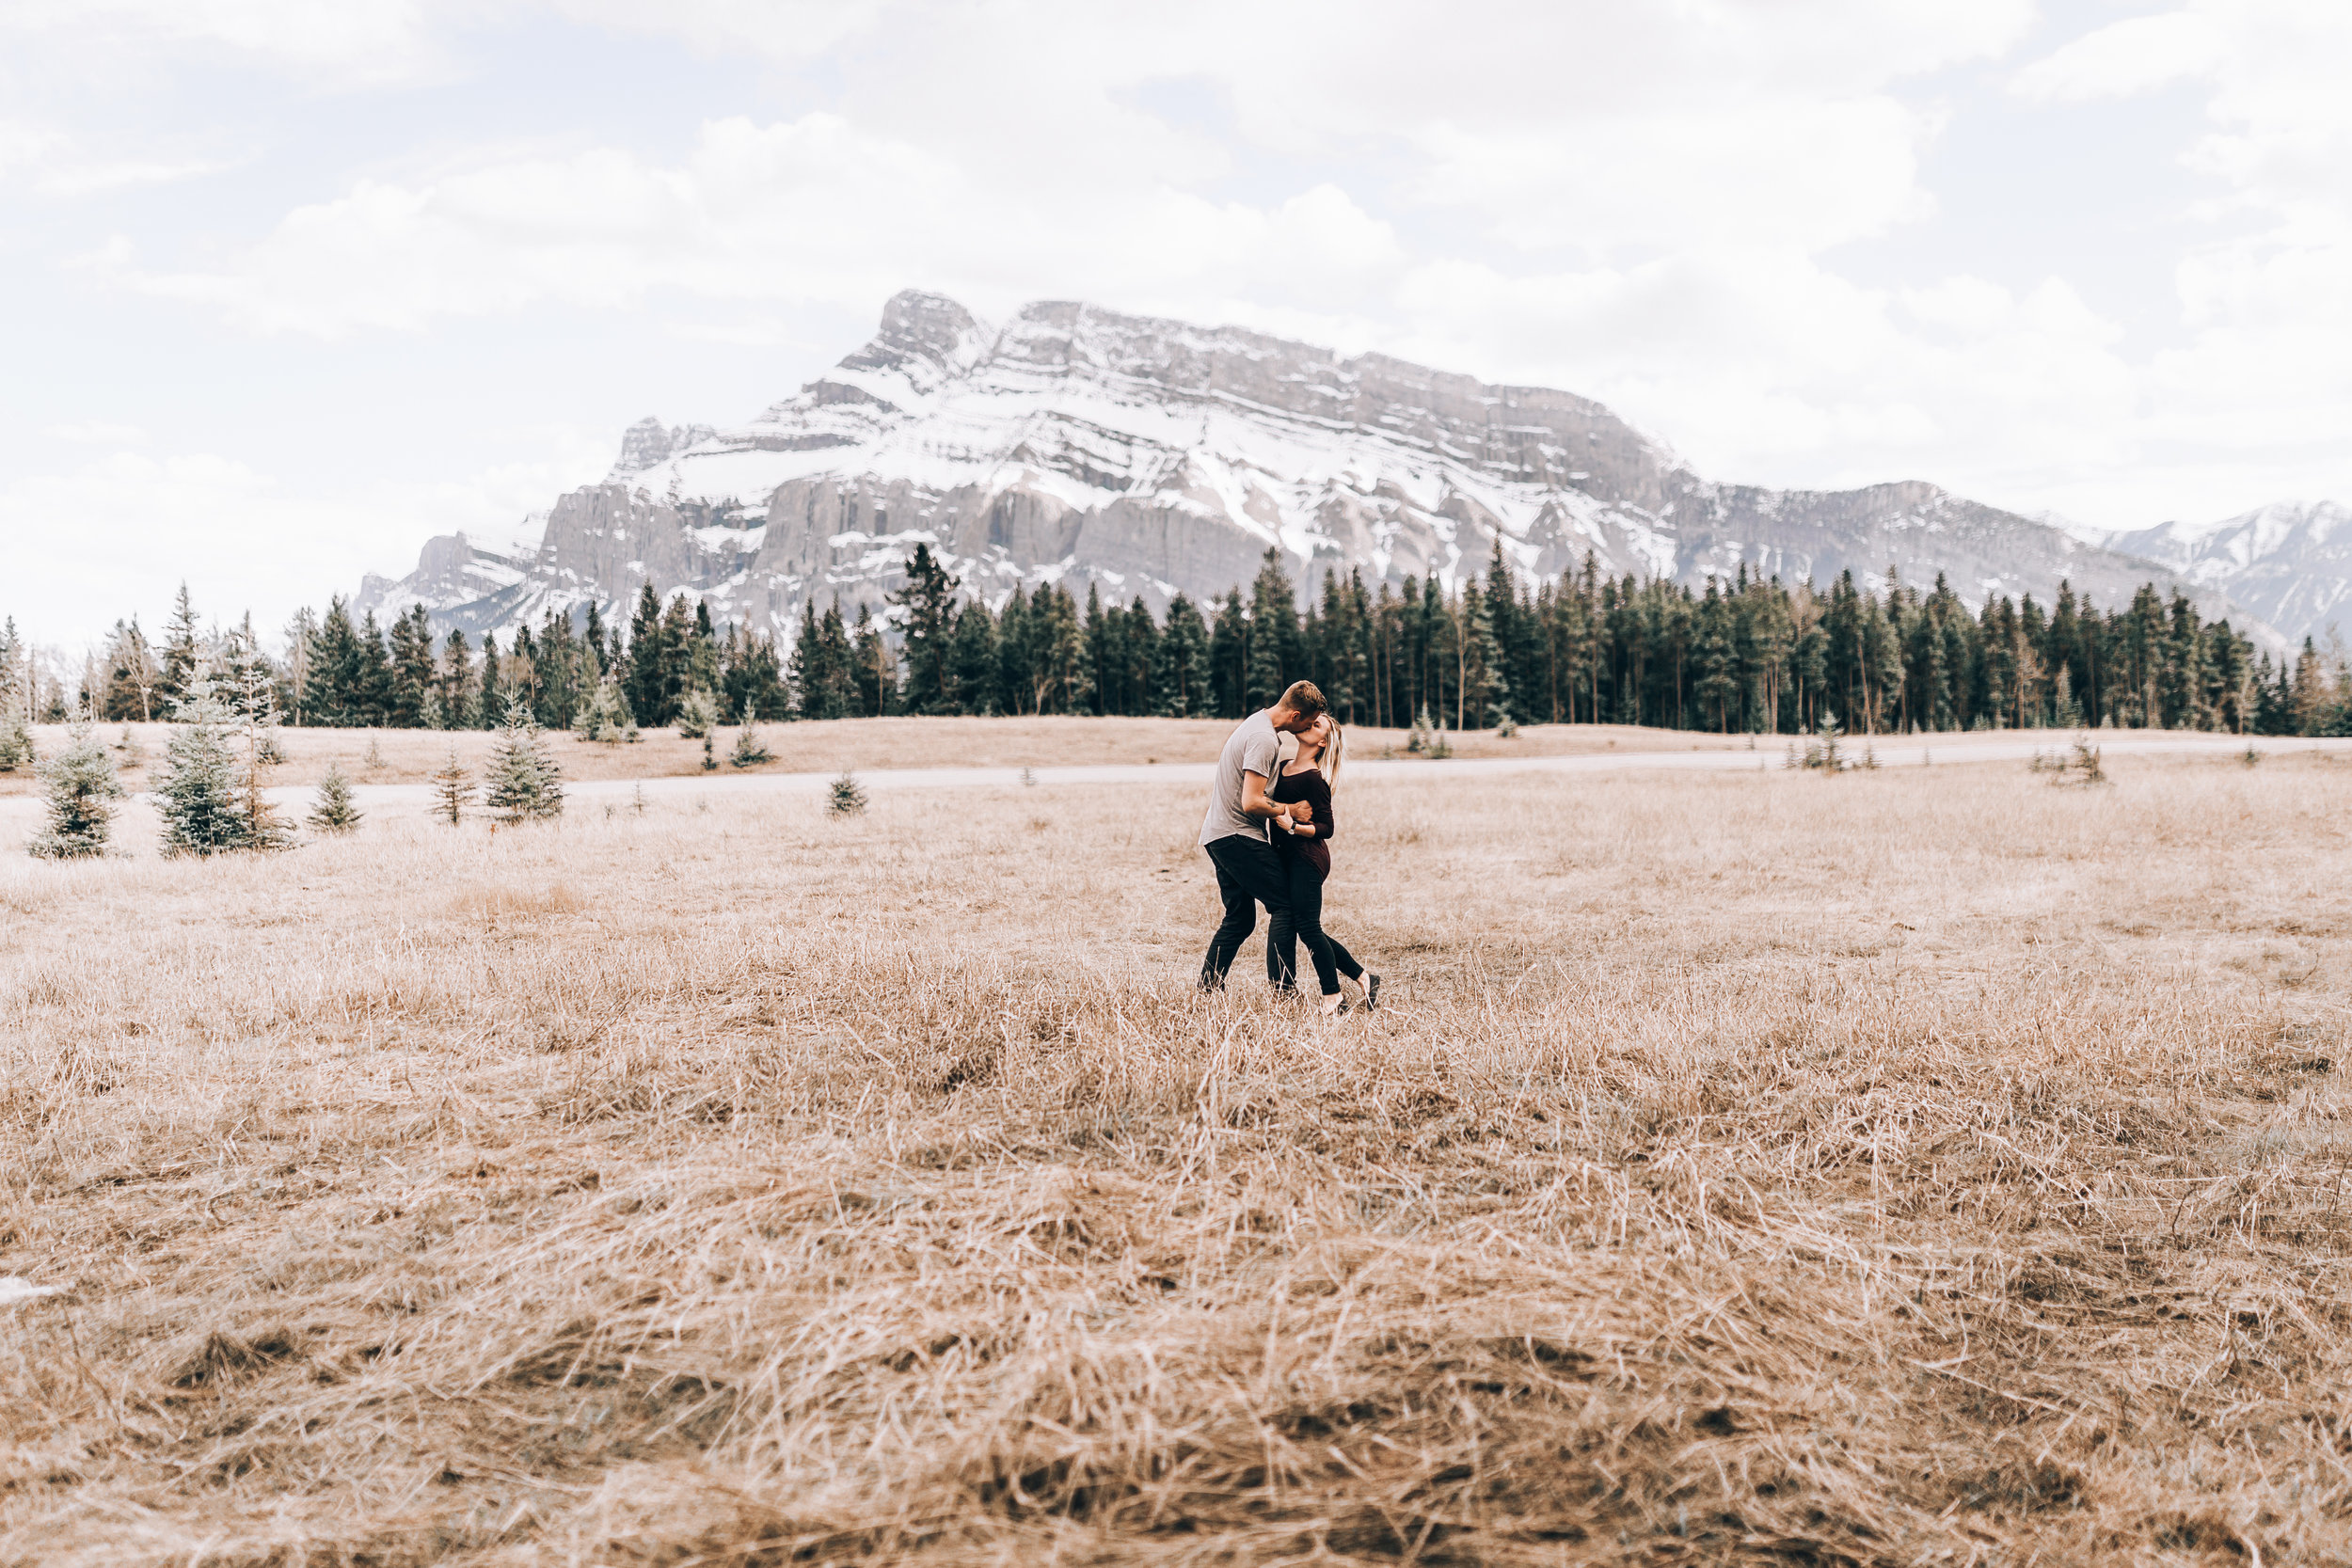 simpleperfectionsphotography.cullen+chelsey-58.jpg